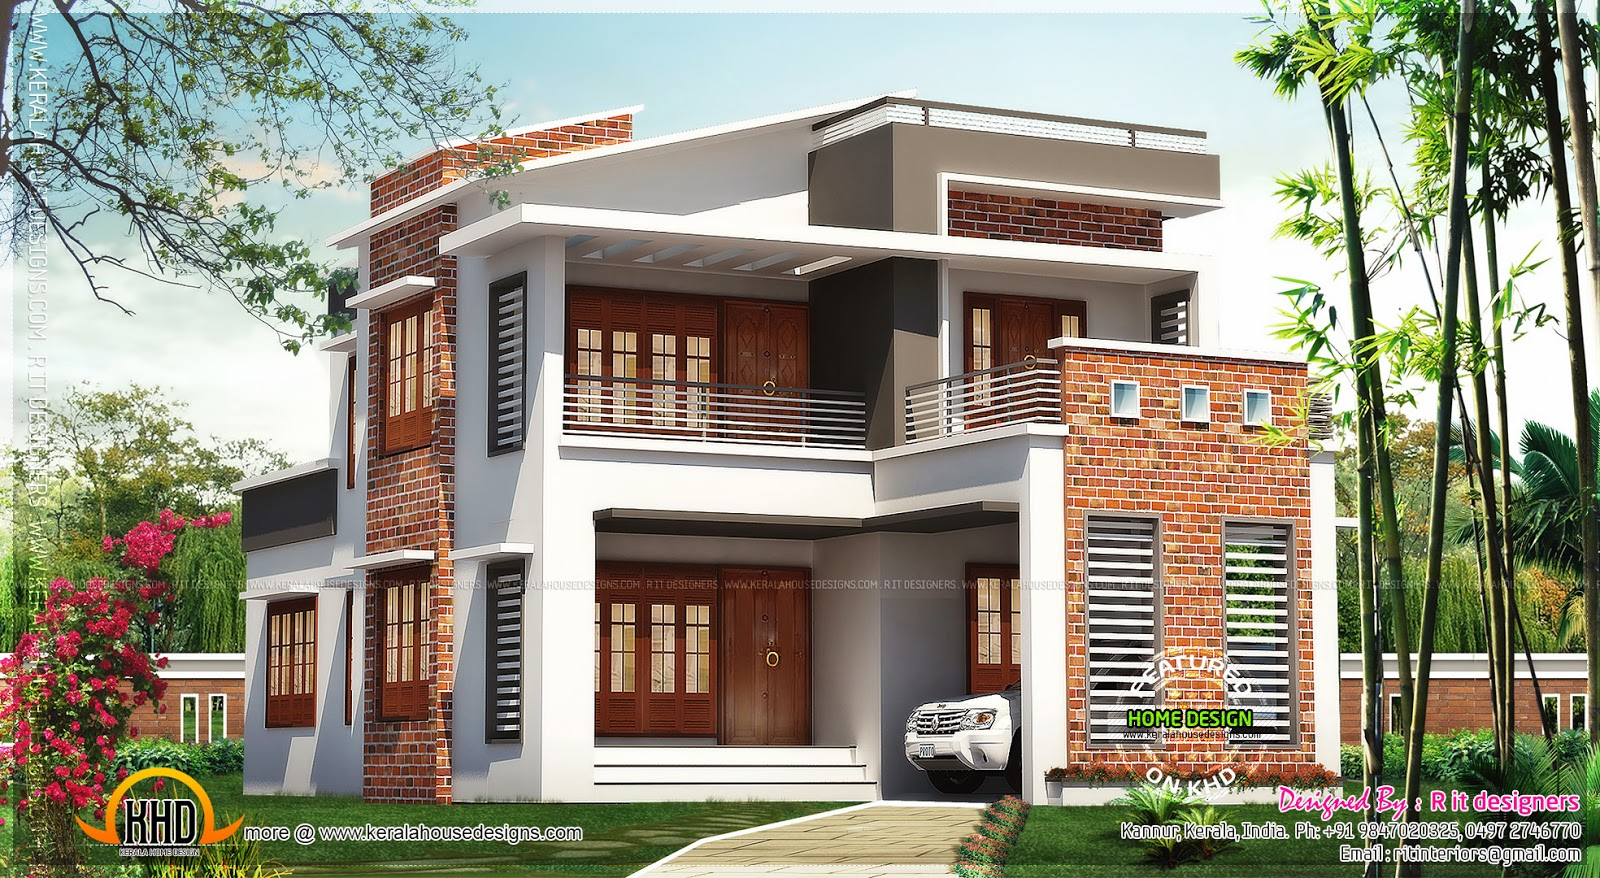 Brick mix house exterior design kerala home design and for Front house design for small houses